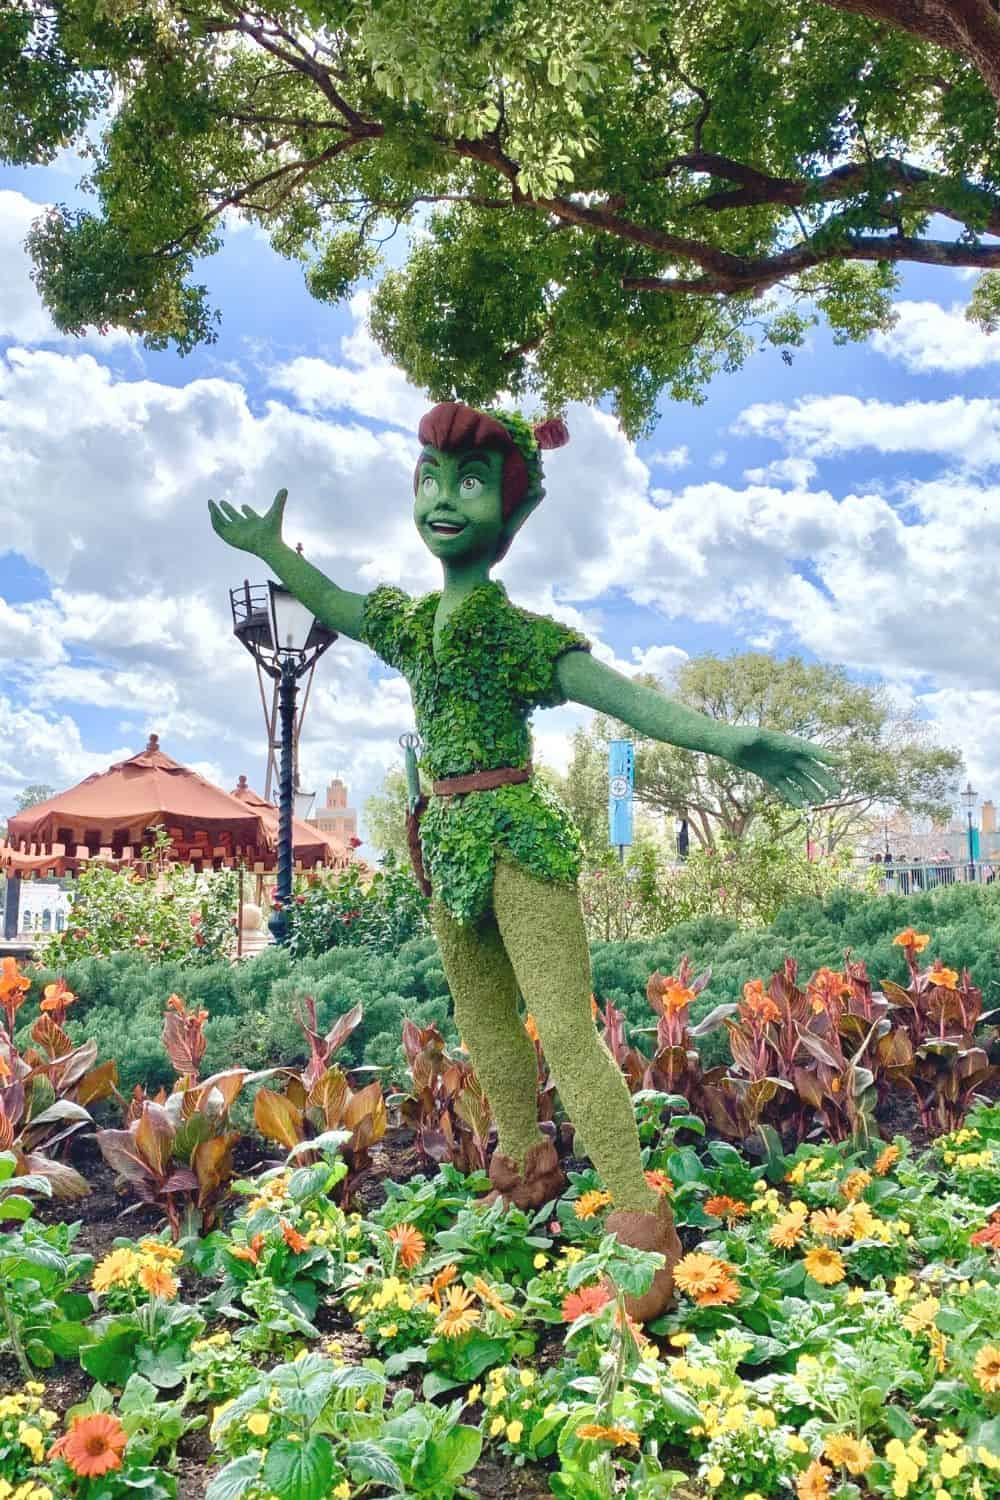 Spring is in the air at Walt Disney World. The Epcot Flower And Garden Festival is in full bloom. Check out this Ultimate Guide To Epcot Flower And Garden Festival before you visit.